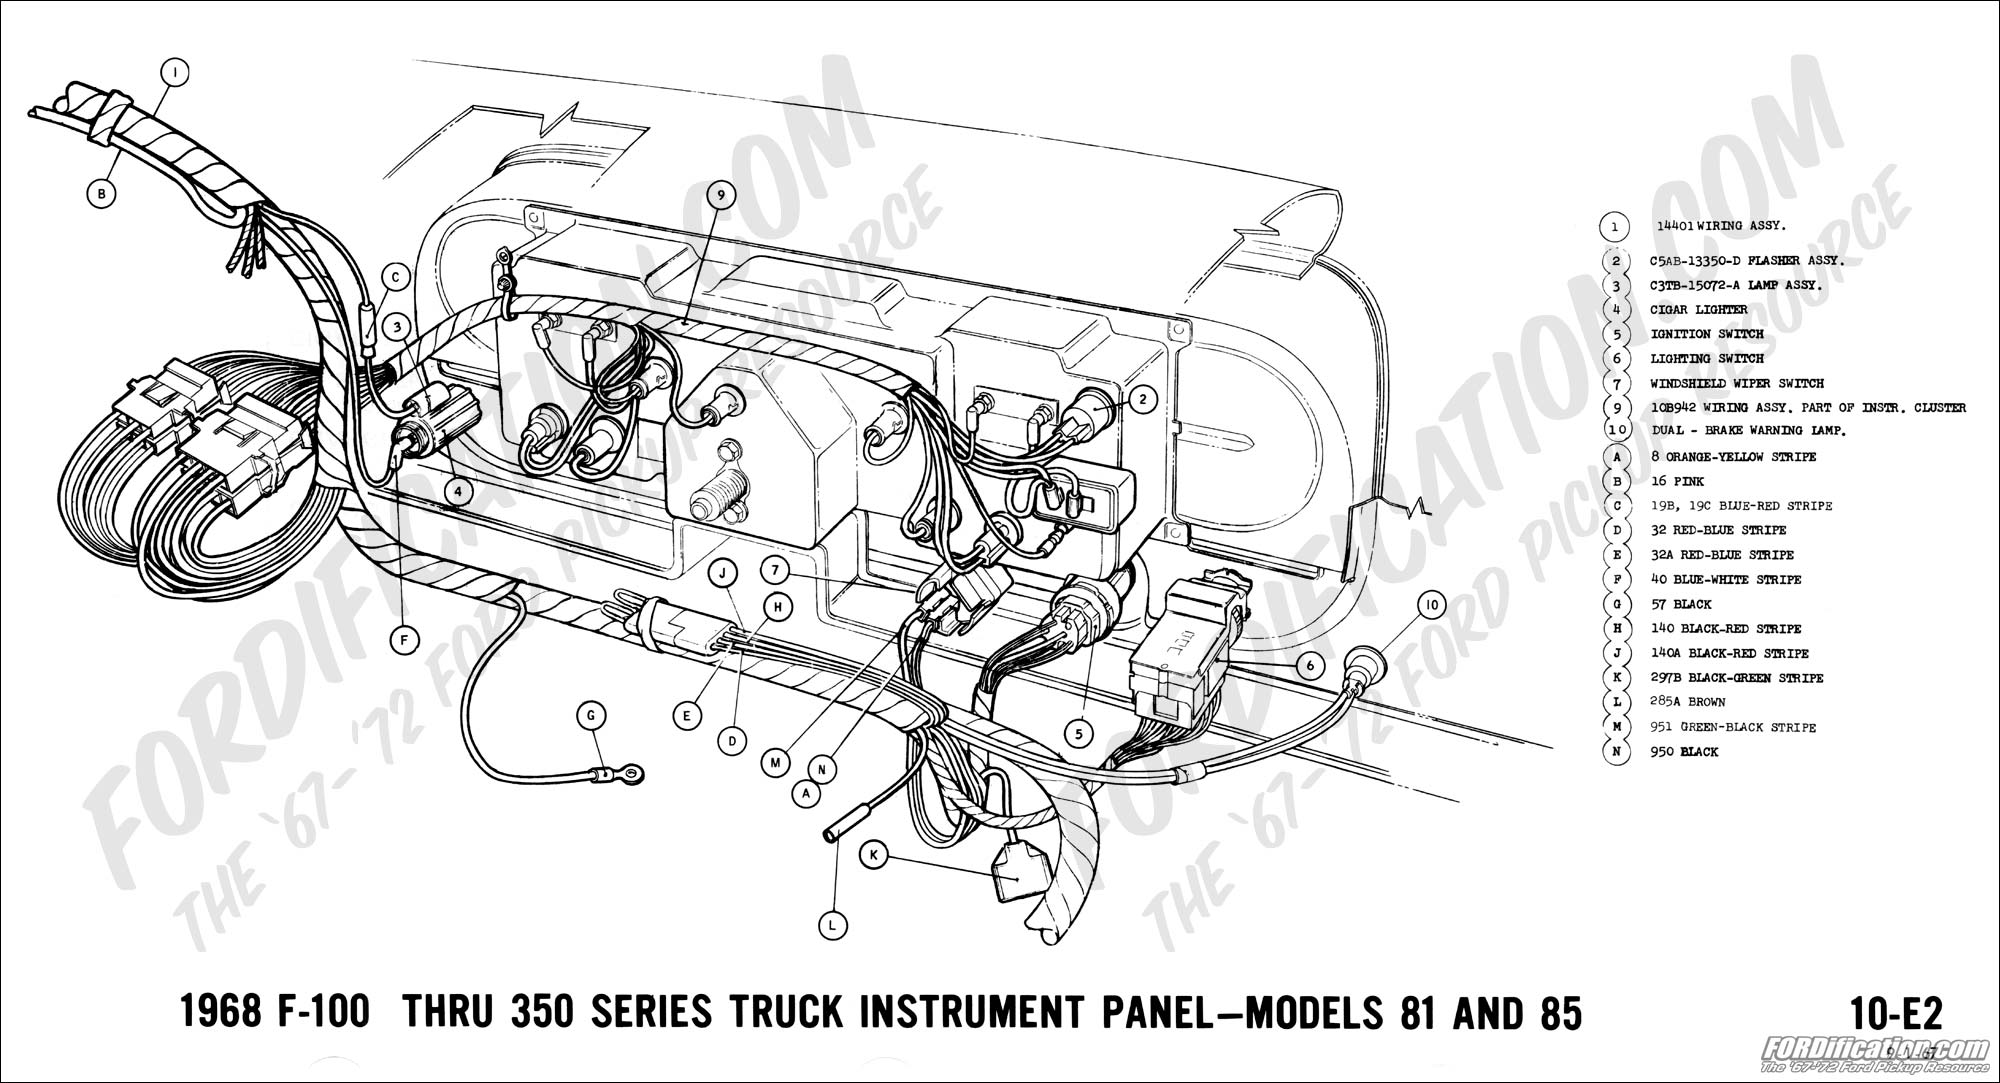 68 04 ford truck technical drawings and schematics section h wiring Ford 4600 Wiring Schematic at fashall.co